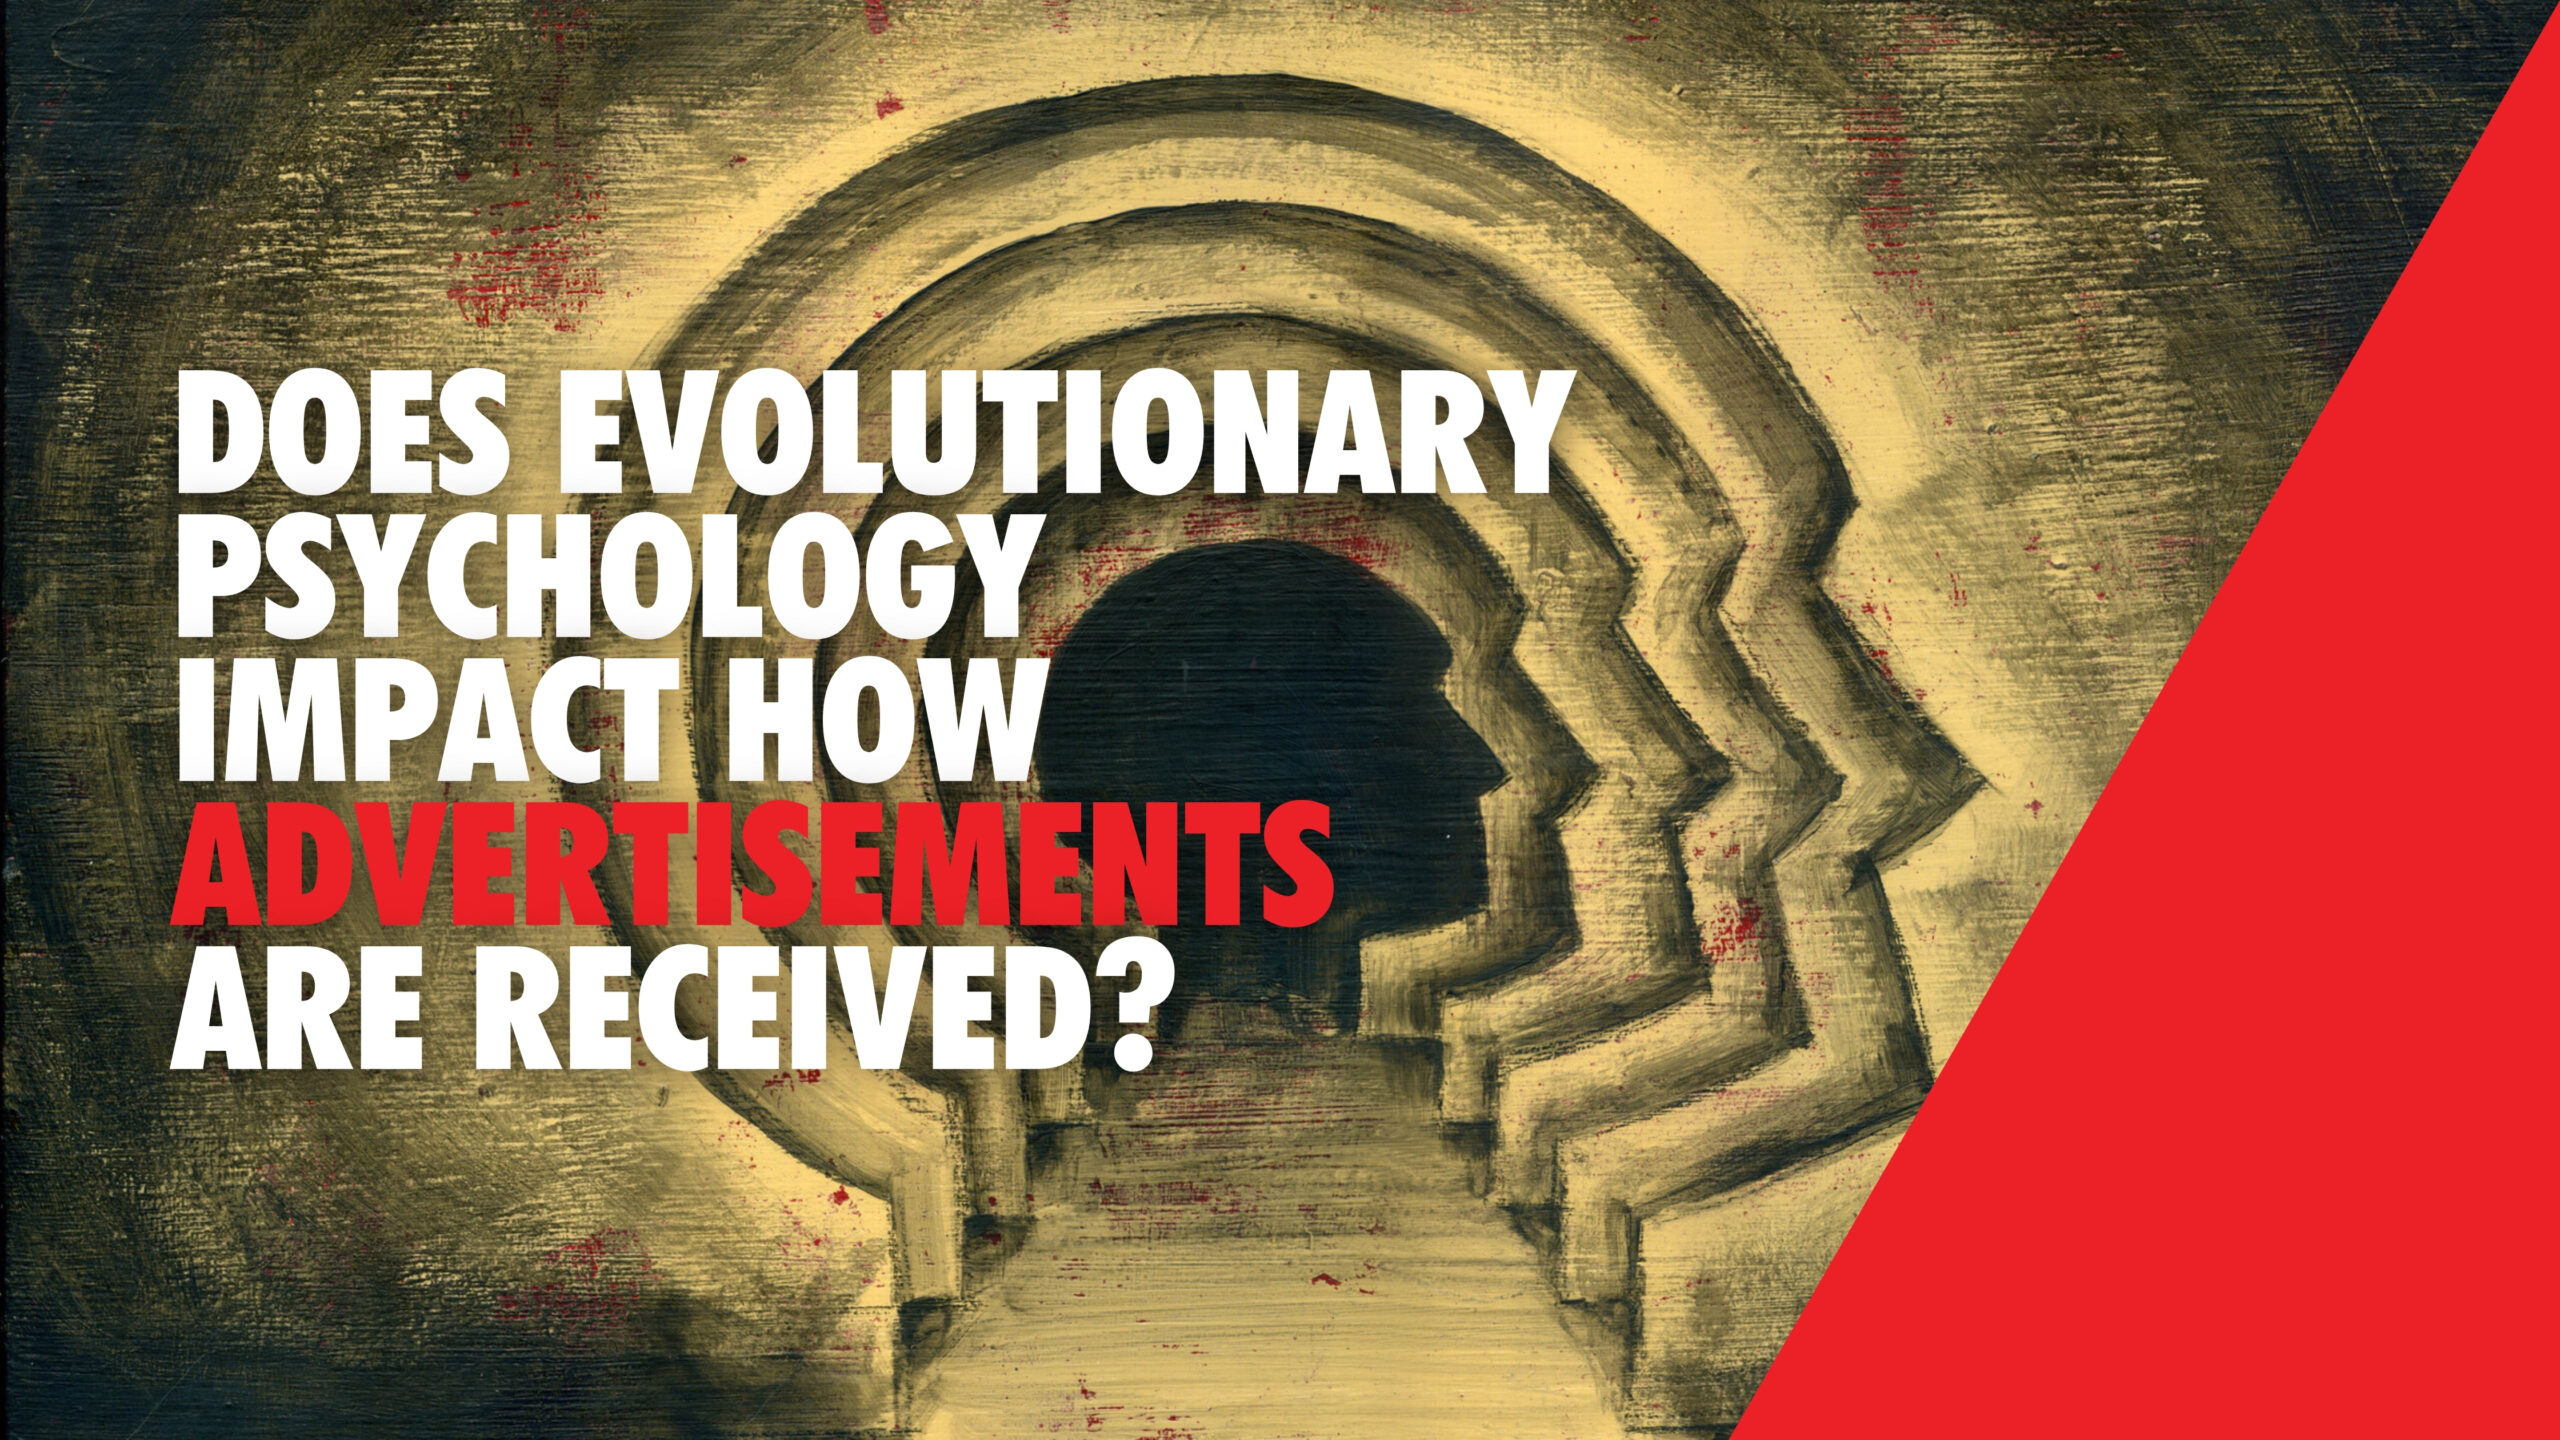 Does Evolutionary Psychology Impact How Advertisements are Received?